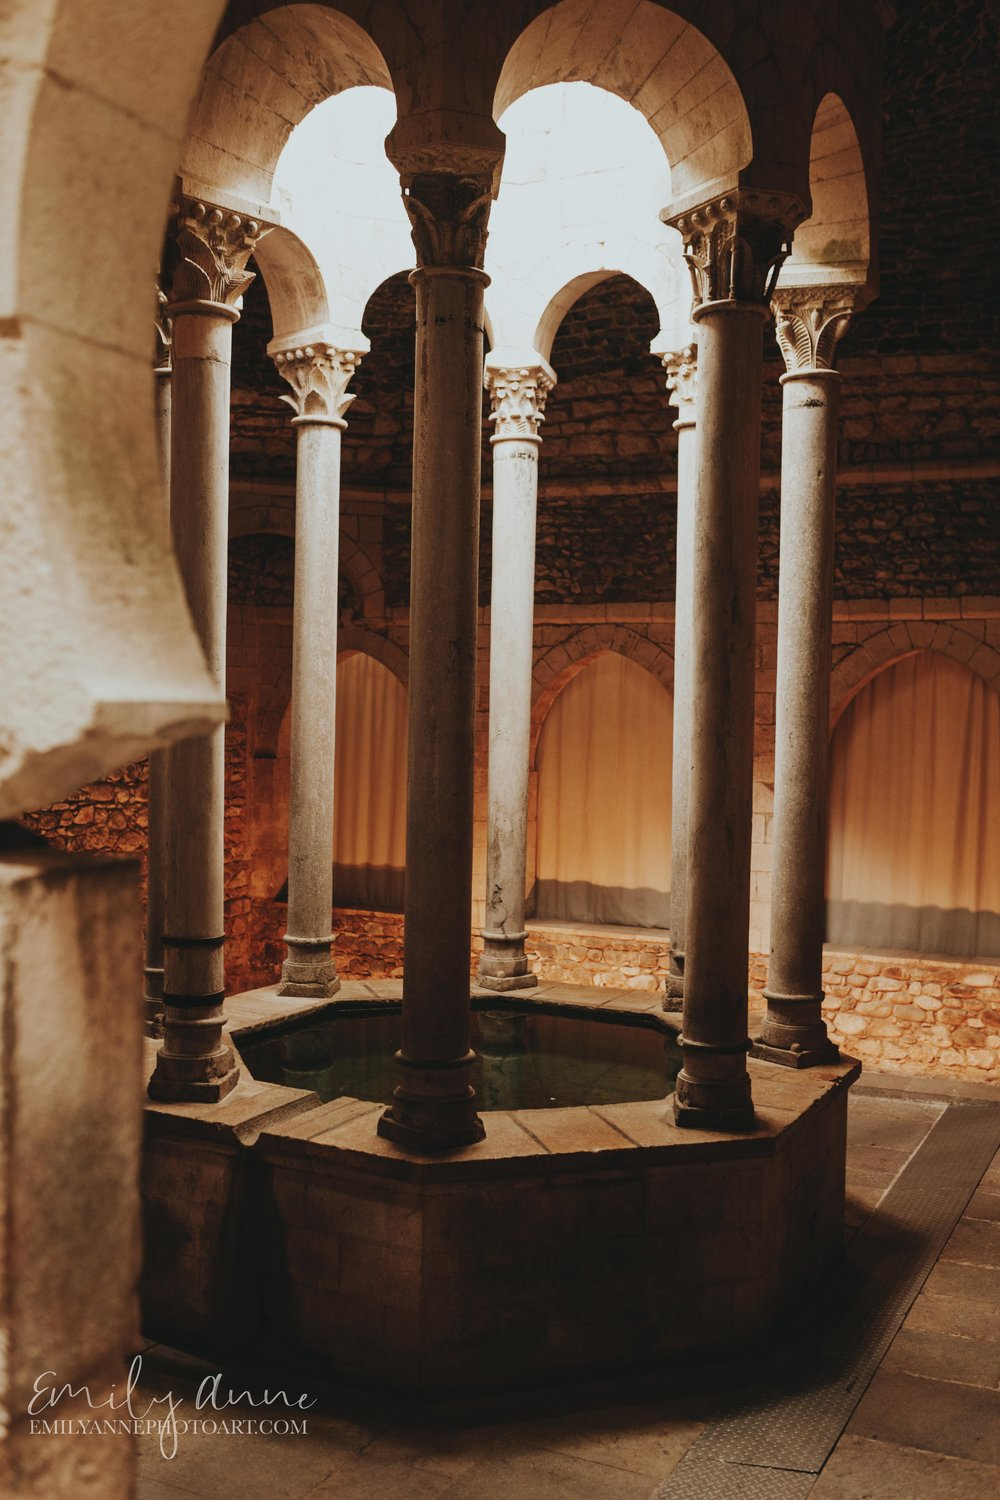 arabic baths of girona Spain one of the coolest inspirational shots in nature shot in the frigidarium